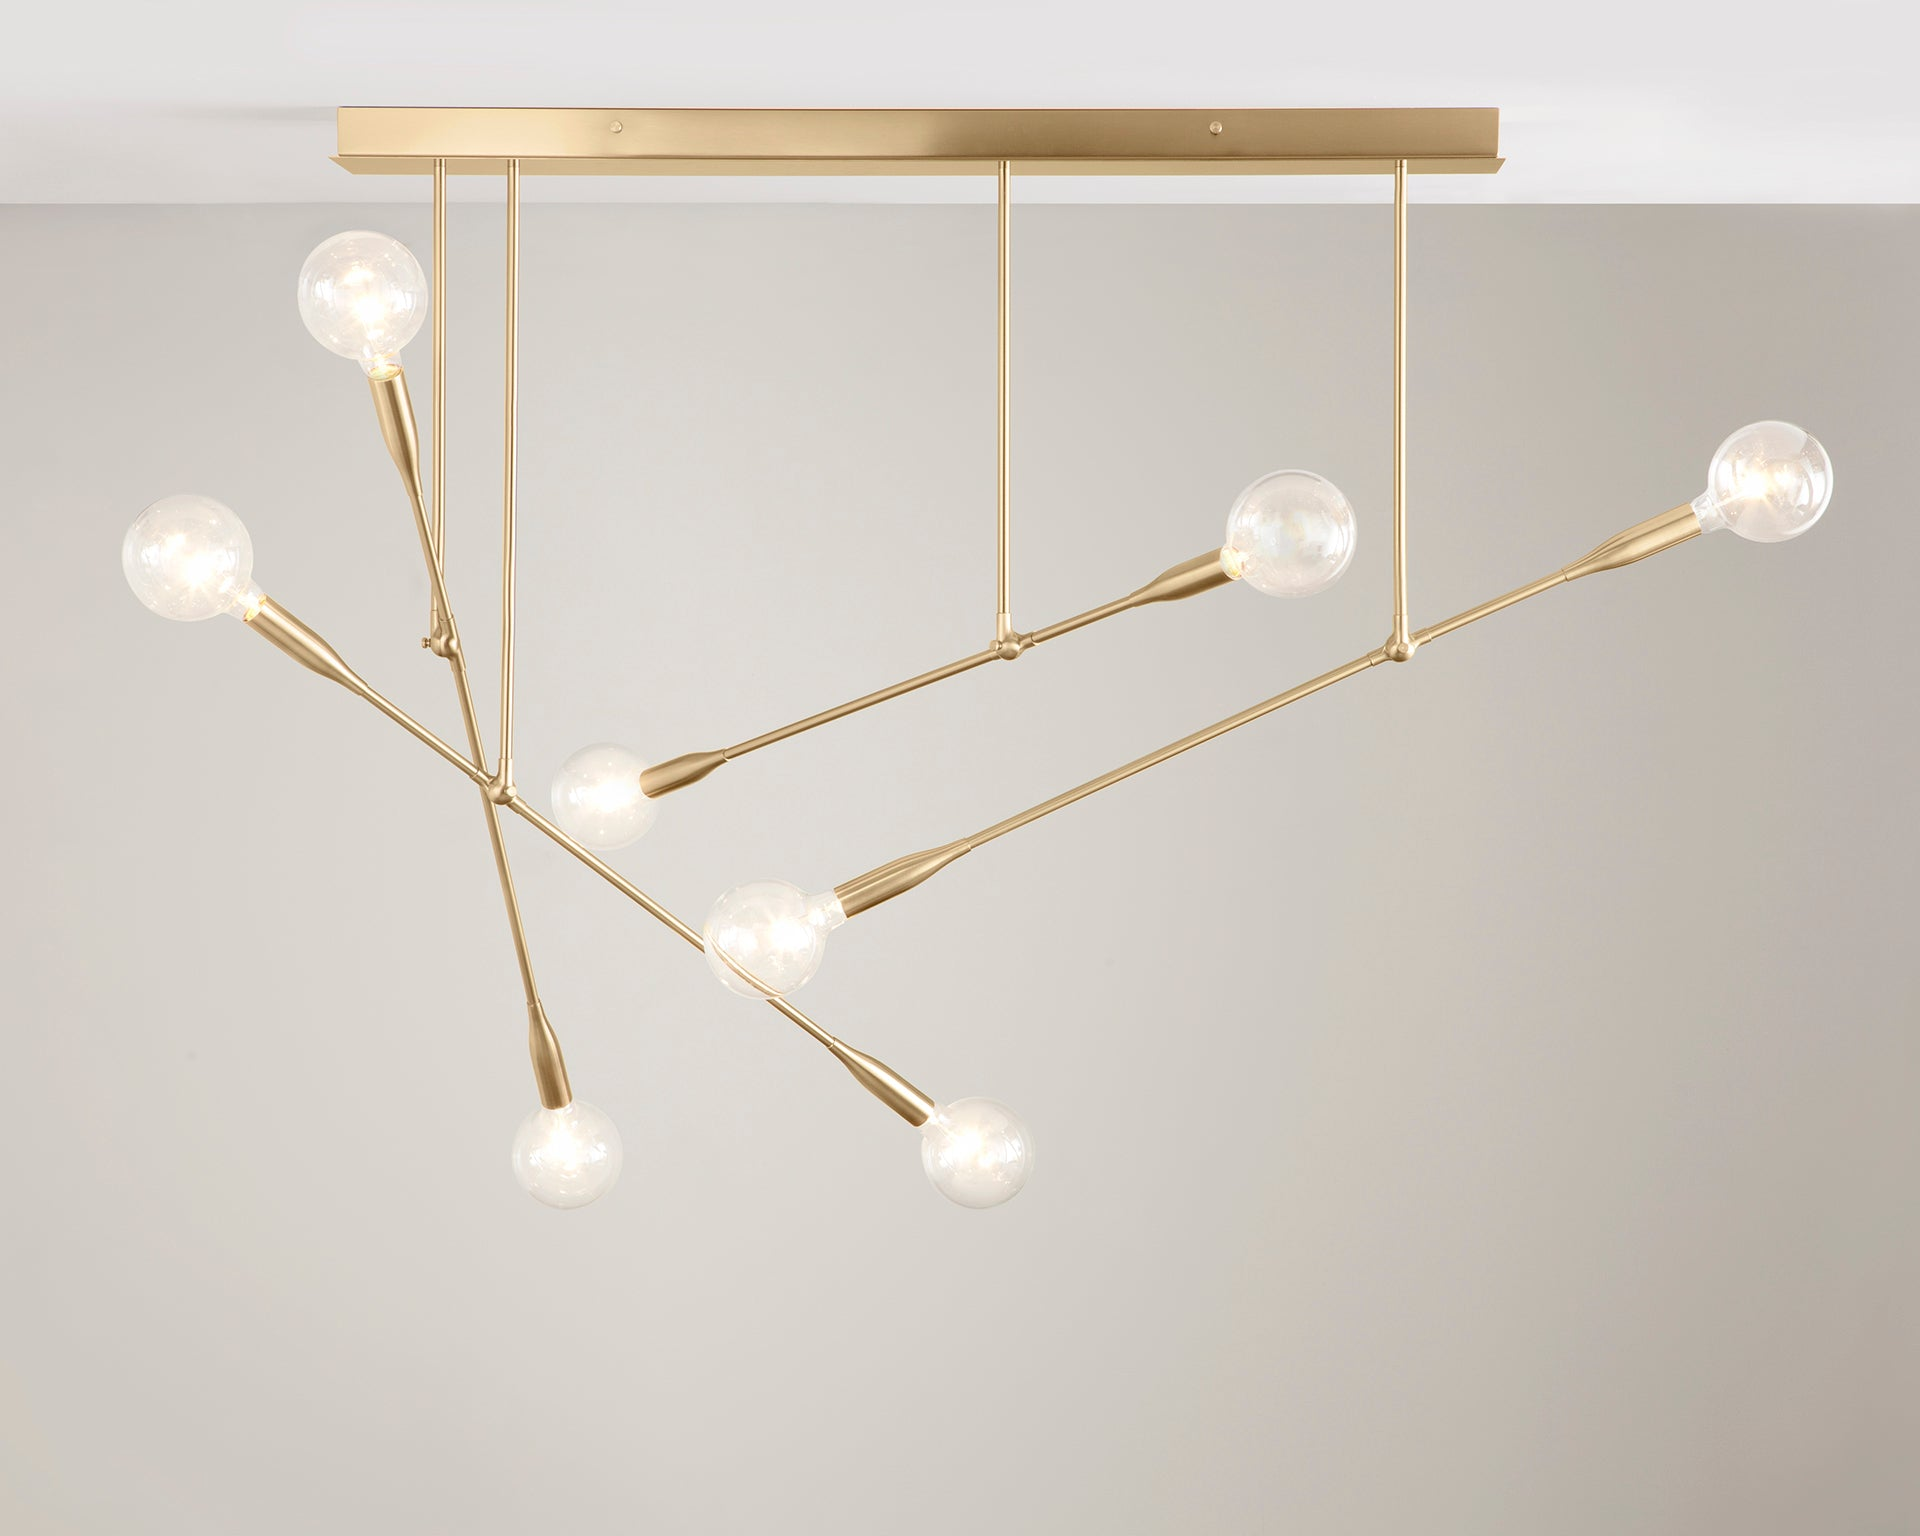 Sorenthia Quad modern chandelier in Brushed Brass with Globe Bulbs by Studio DUNN on grey background